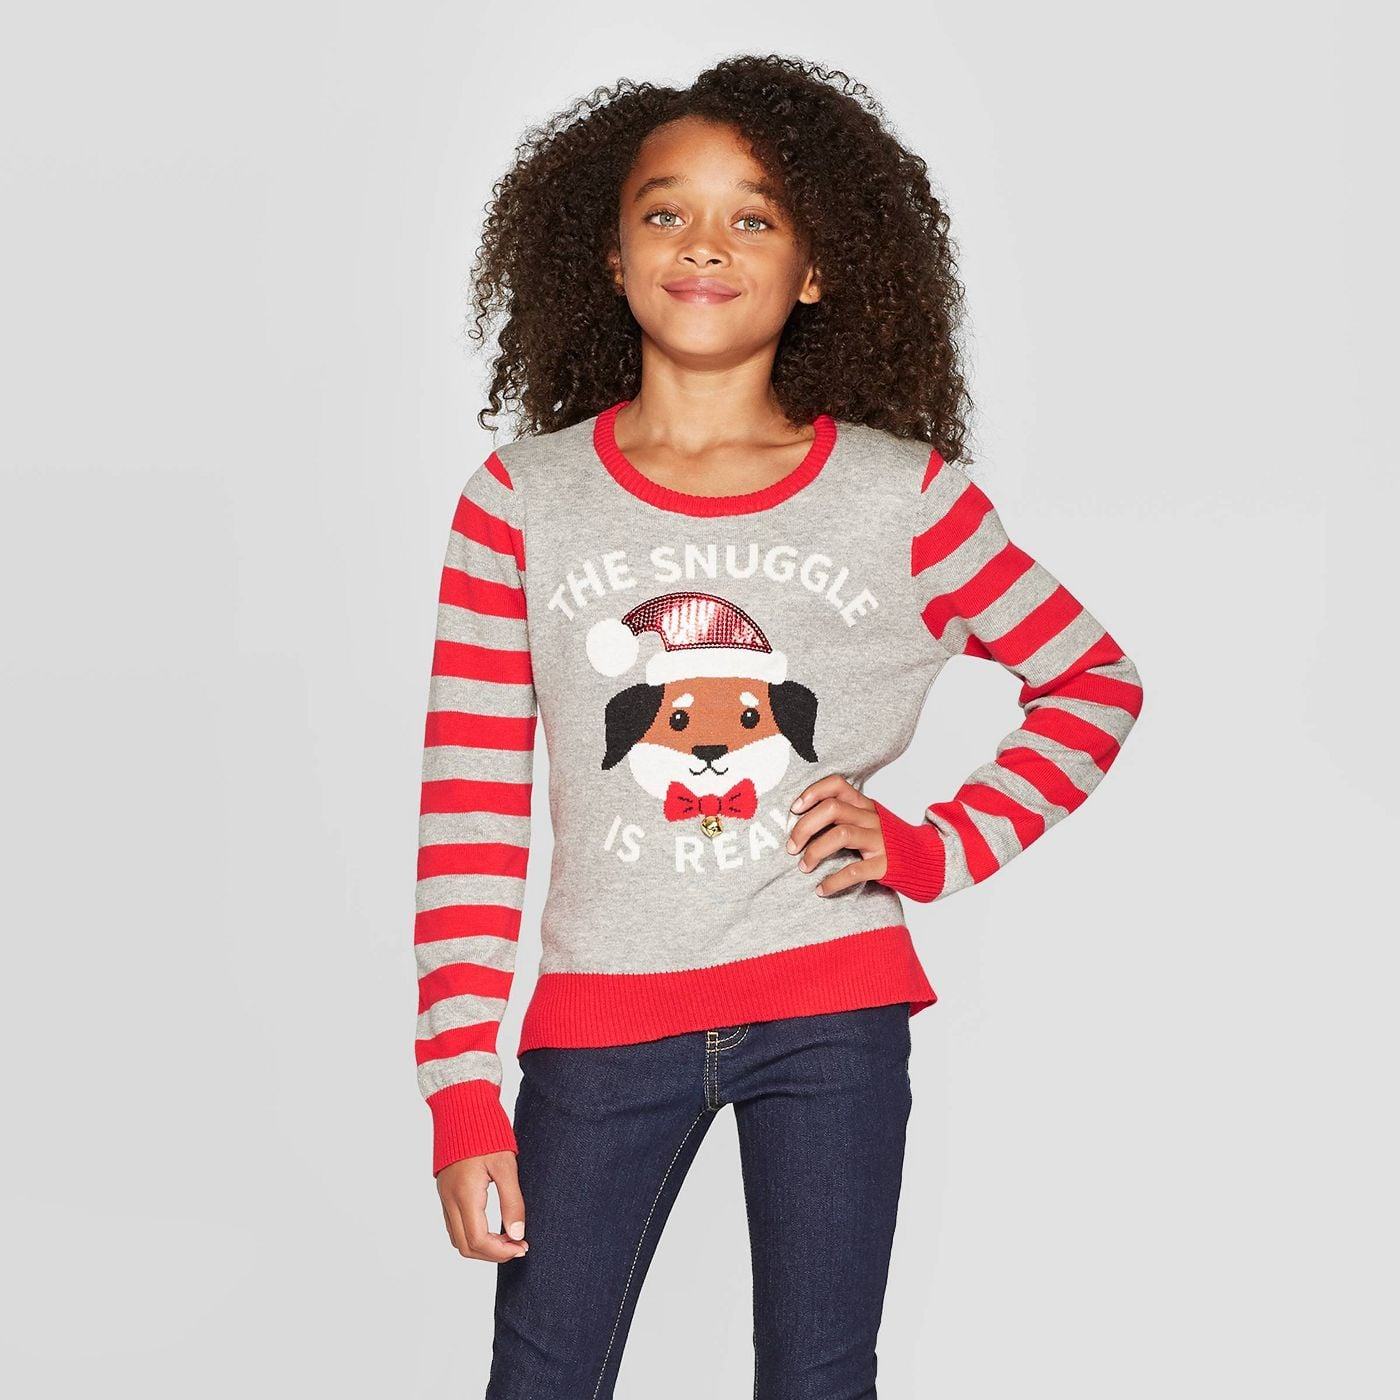 Ugly Christmas Sweaters For Kids at Target | POPSUGAR Family